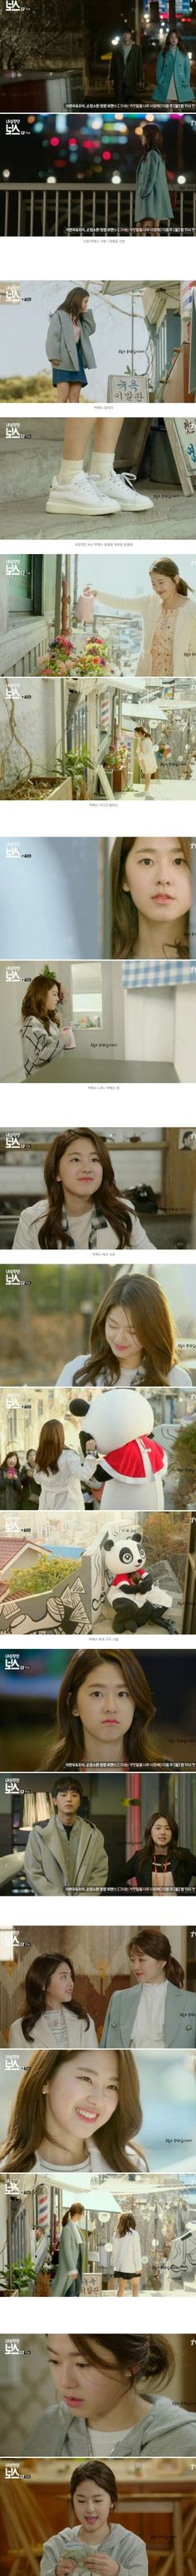 Added episode 15 captures for the Korean drama 'Introvert Boss'.